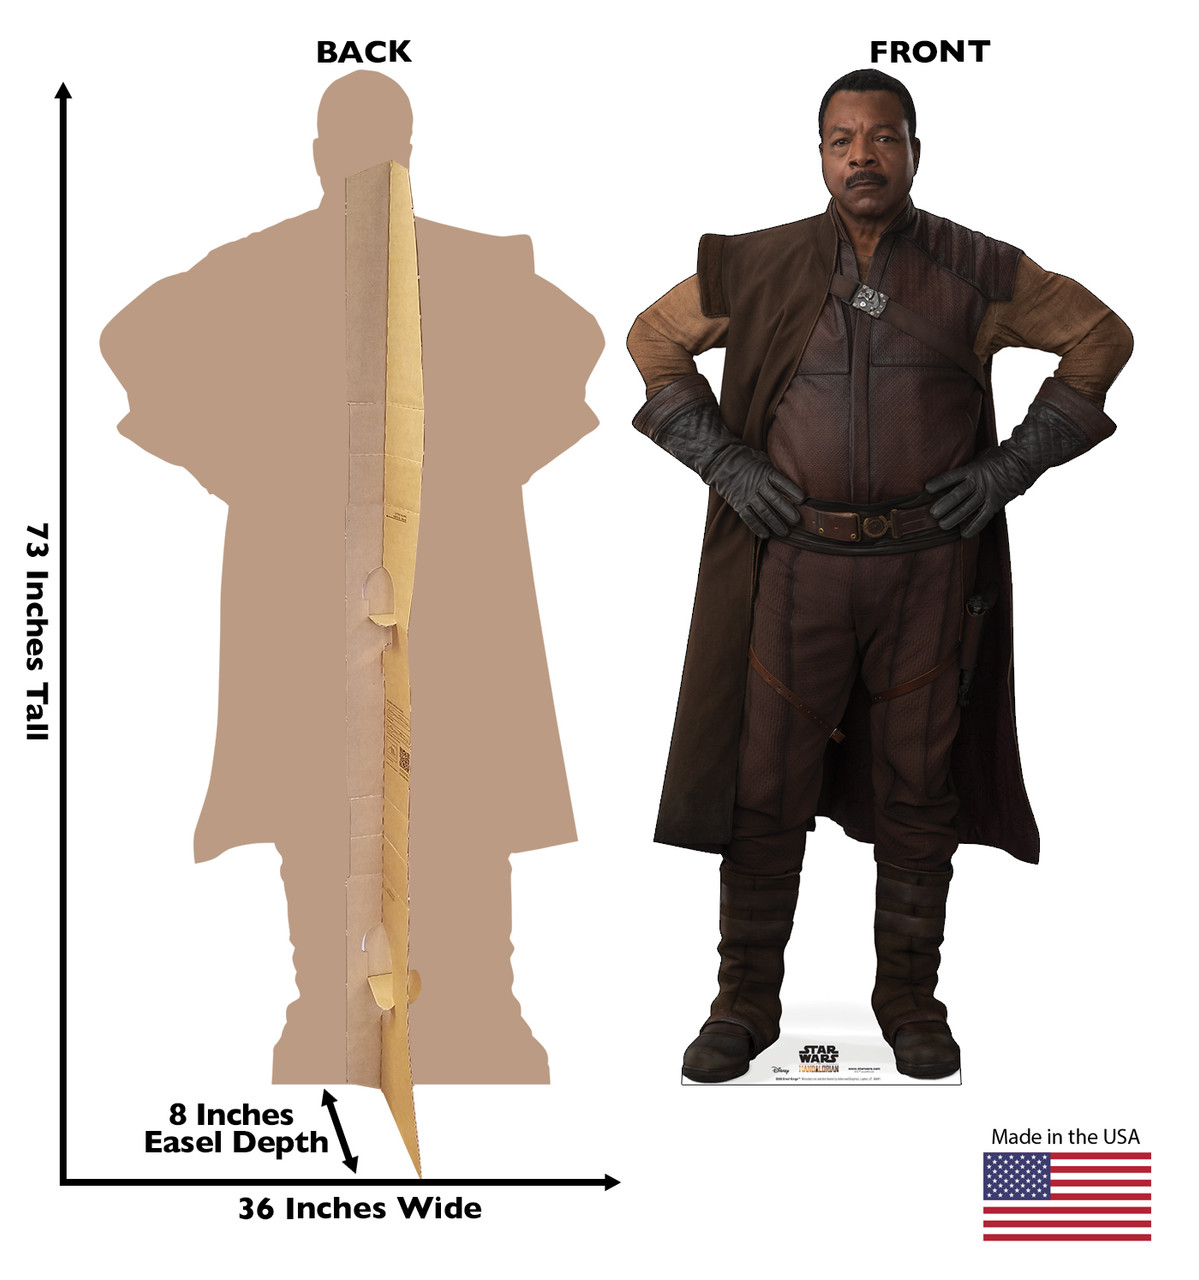 Life-size cardboard standee of Greef Karga from The Mandalorian with back and front dimensions.